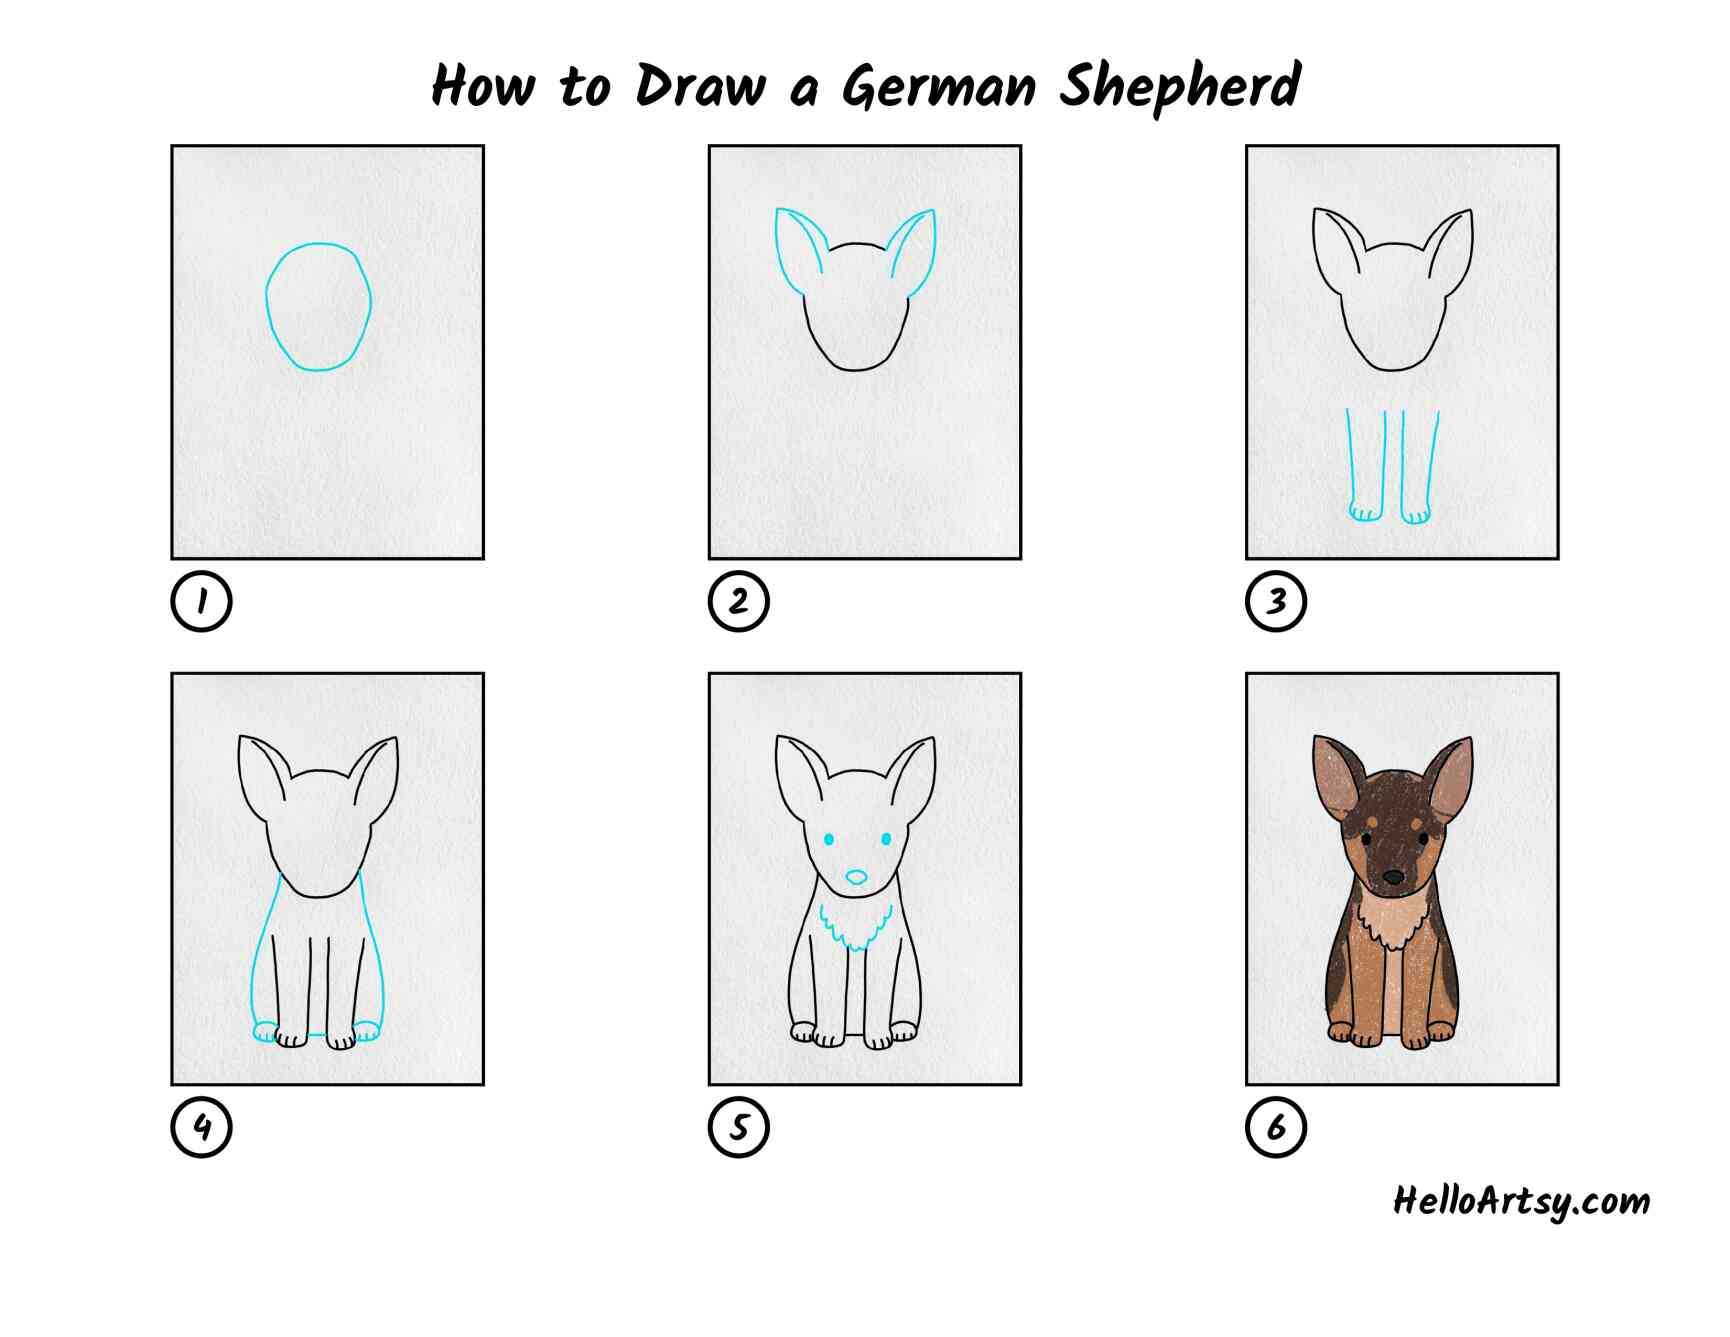 How To Draw A German Shepherd: All Steps